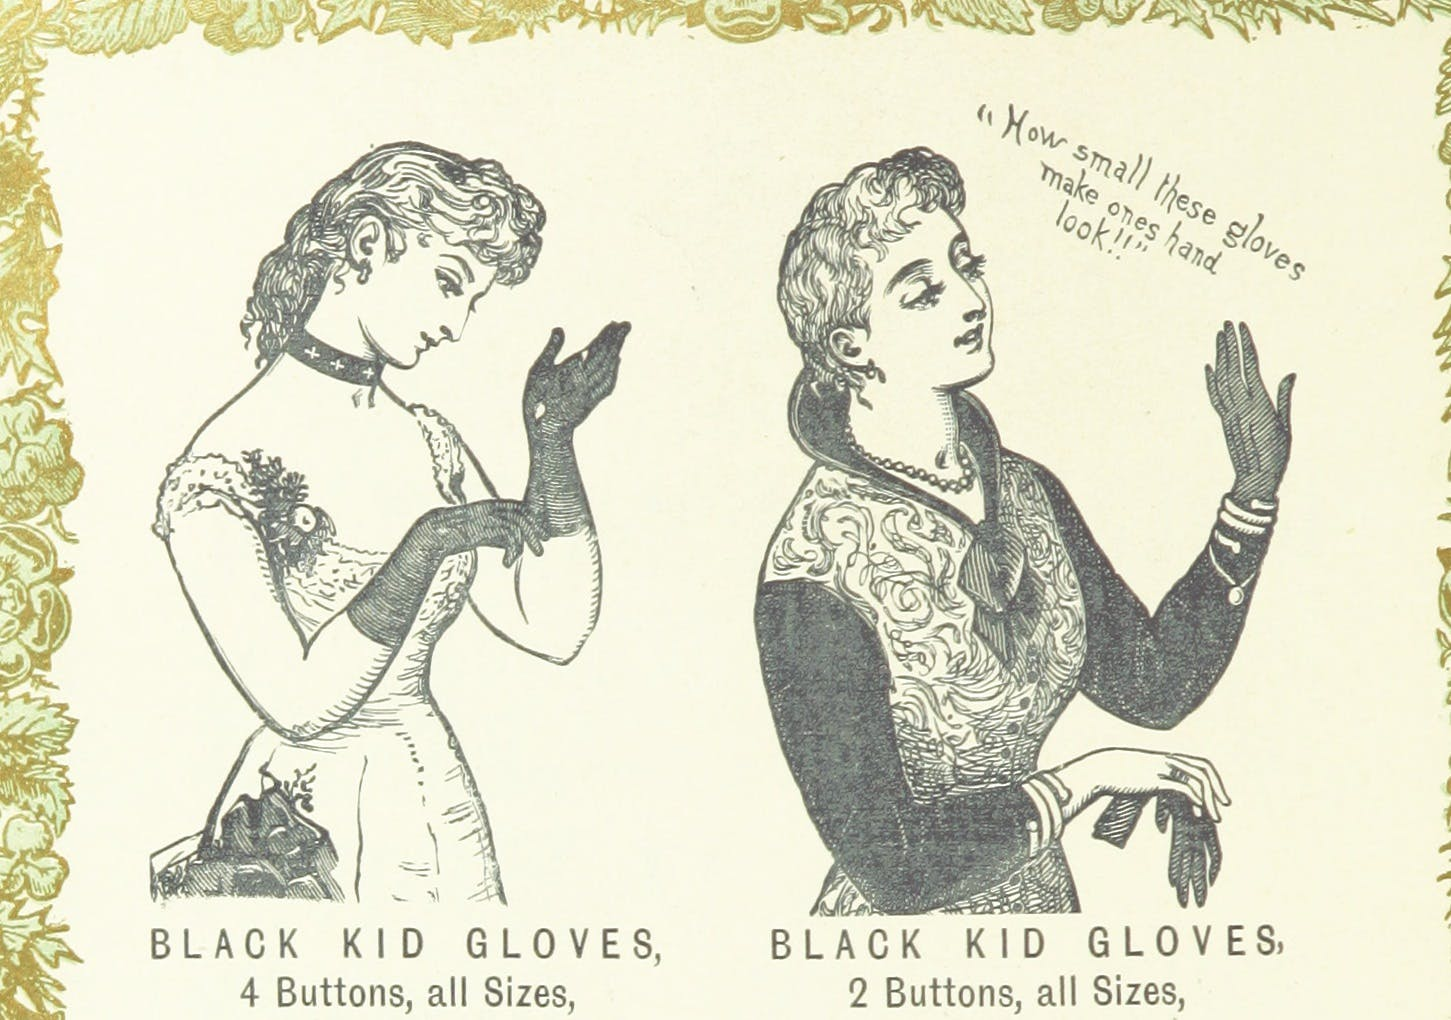 Two women trying on gloves and saying how small they make their hands look